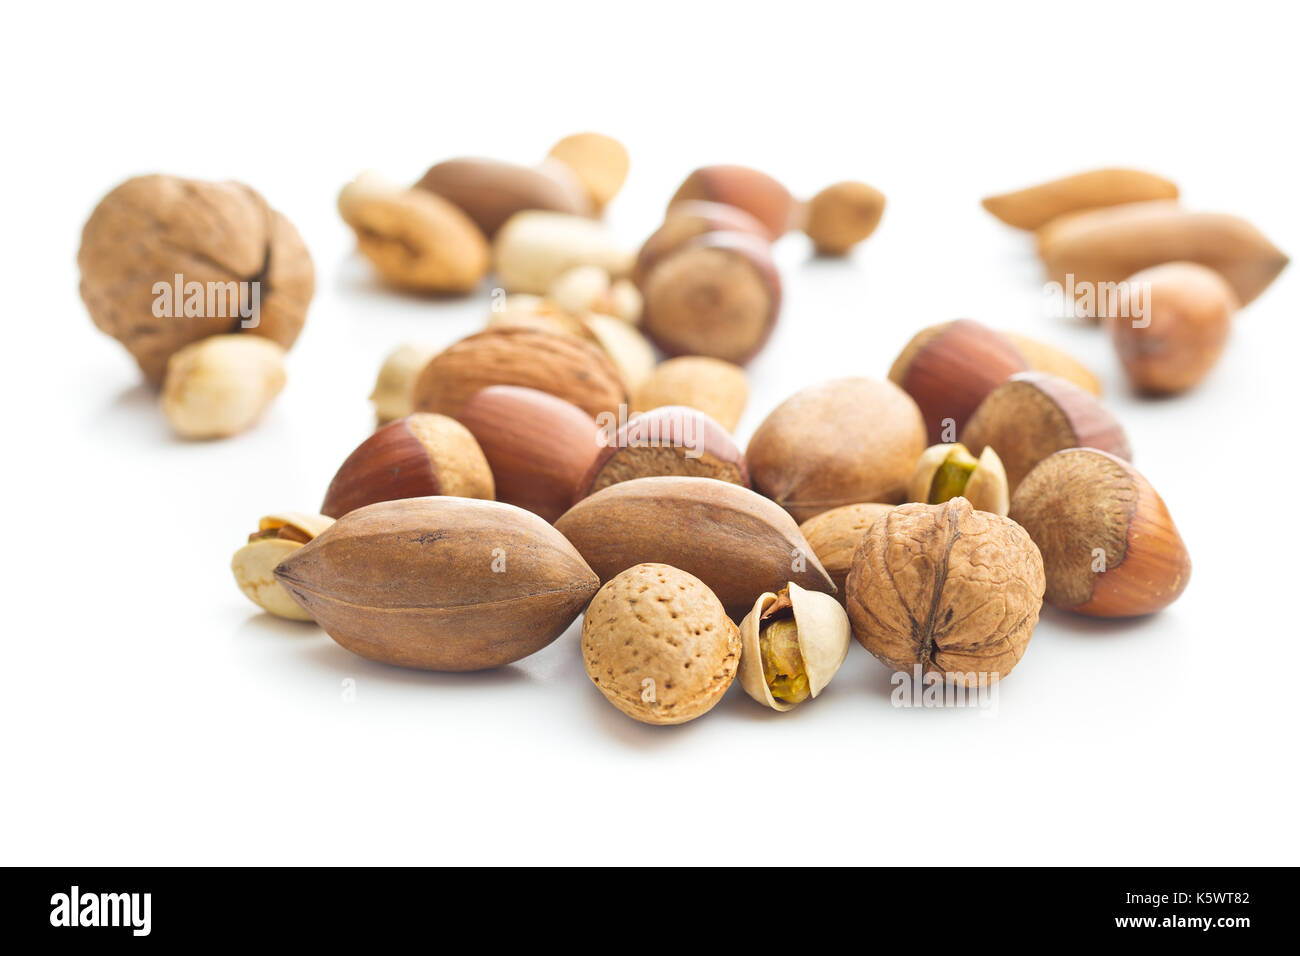 Different types of nuts in the nutshell. Hazelnuts, walnuts, almonds, pecan nuts and pistachio nuts isolated on white background. - Stock Image